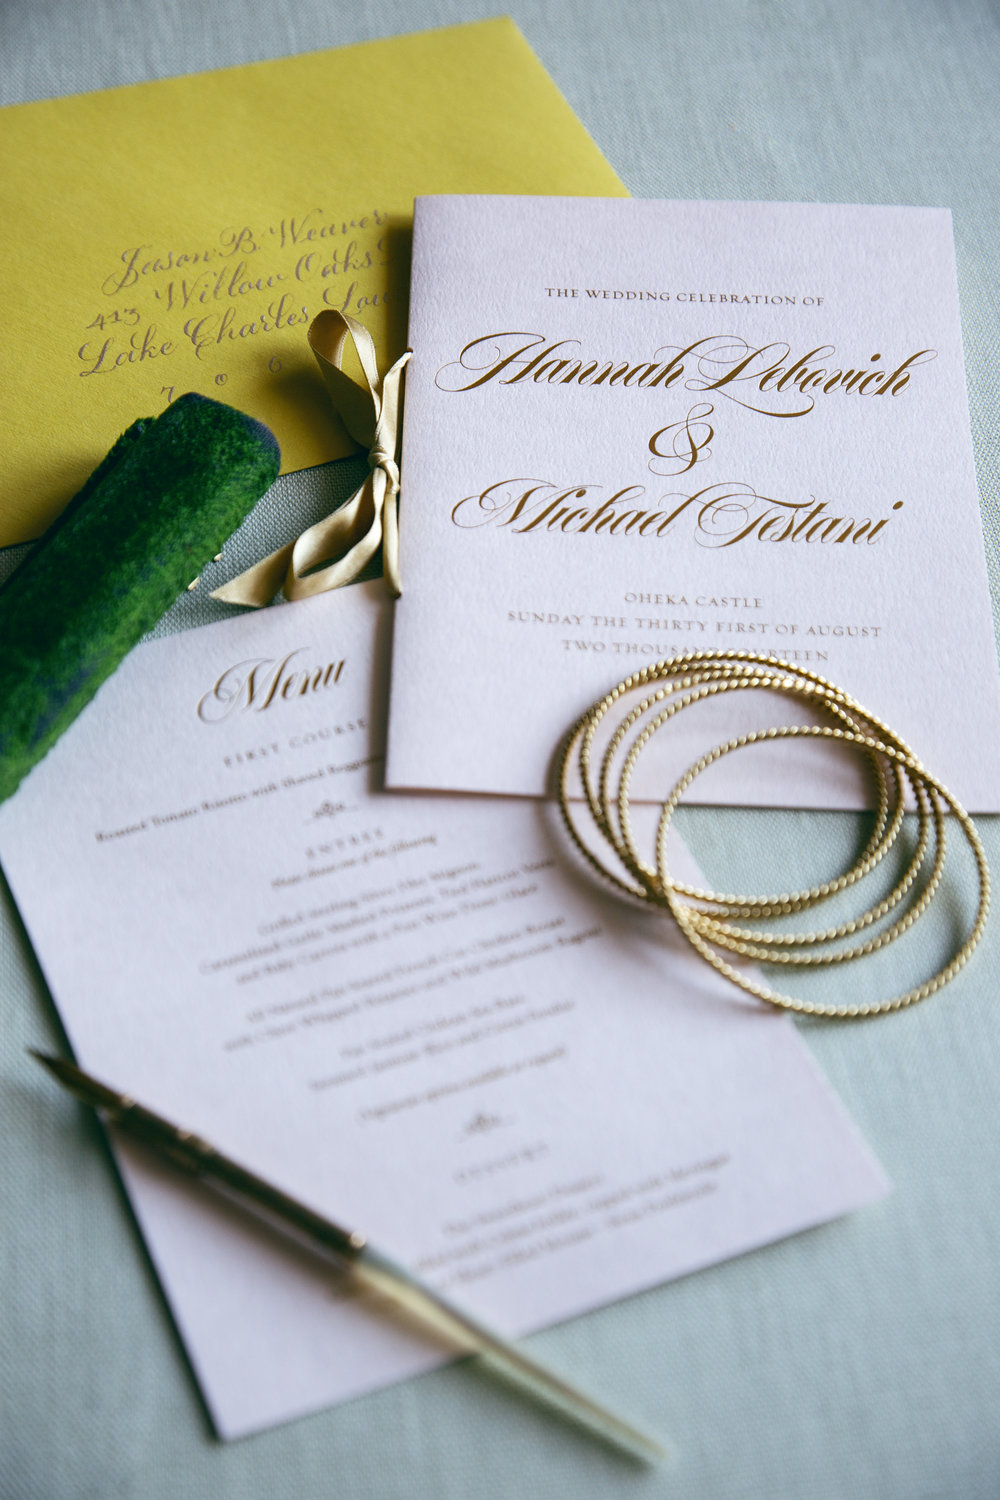 Blush pink with gold foil for elegant wedding menus and programs // designed by Chavelli www.chavelli.com